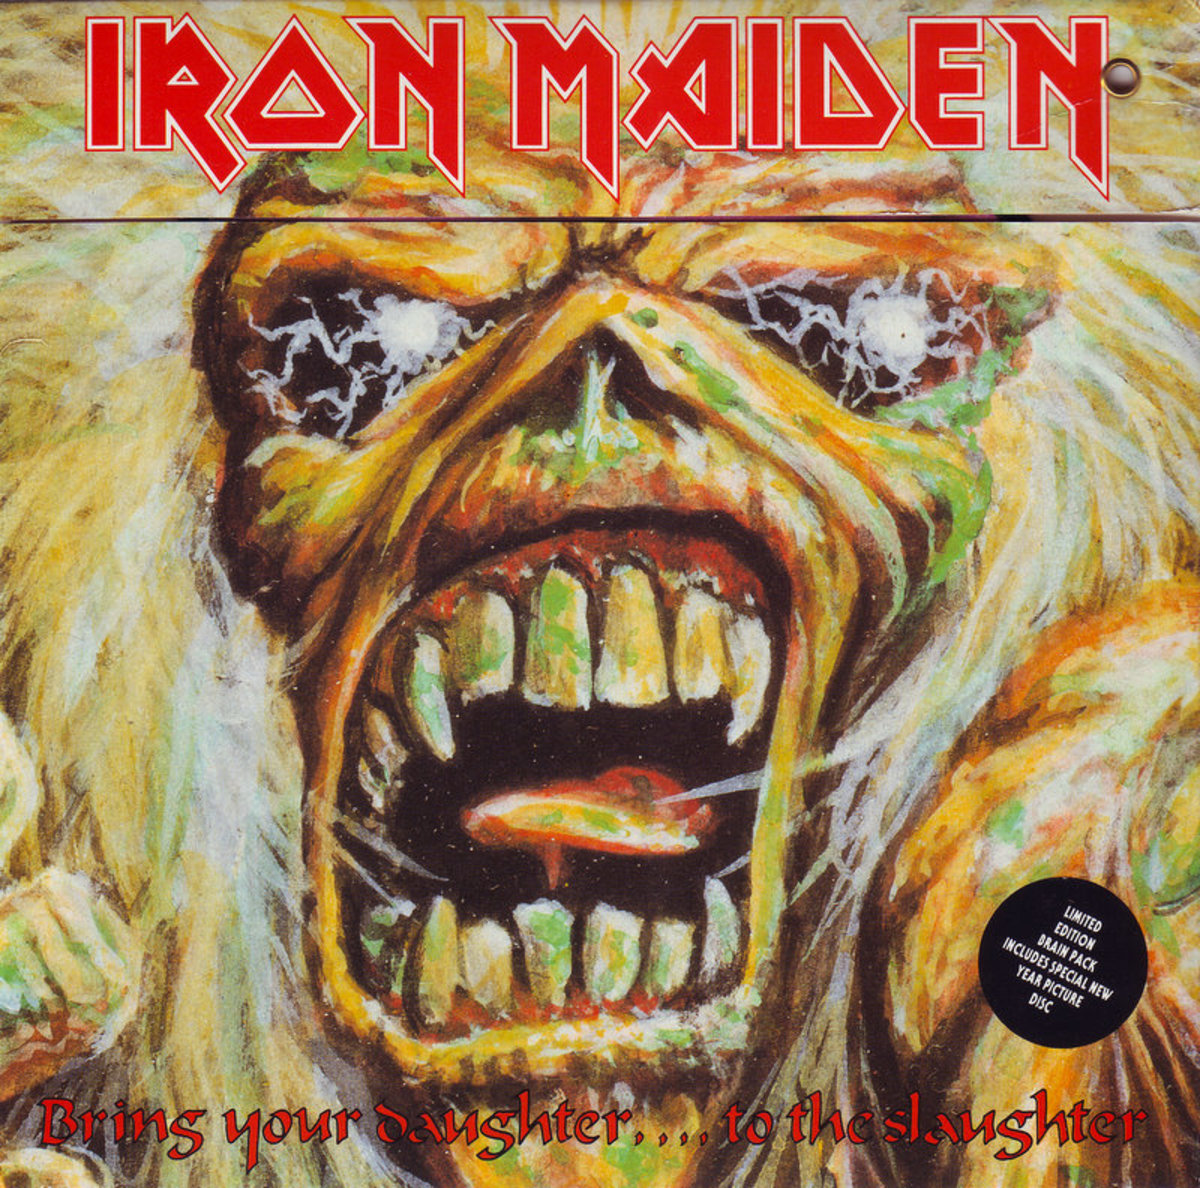 "Iron Maiden ""Bring Your Daughter To the Slaughter"" Brain Pack 7"" Vinyl Single UK Pressing (1990) Plicture Sleeve Cover Art by Derek Riggs"